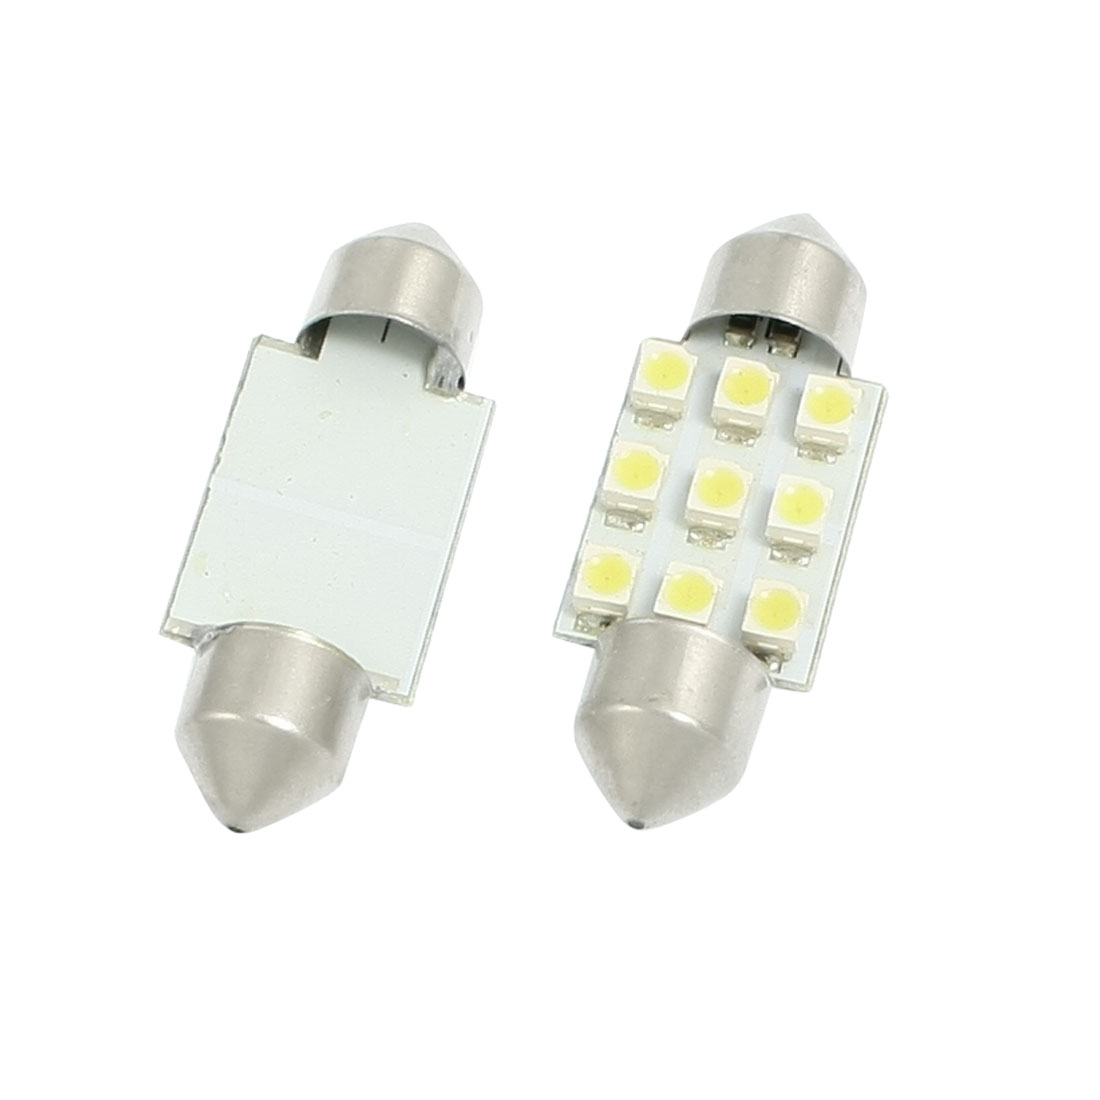 2 Pcs Car White 1210 9 SMD Festoon LED Light Dome Bulb Lamp 35mm DC 12V